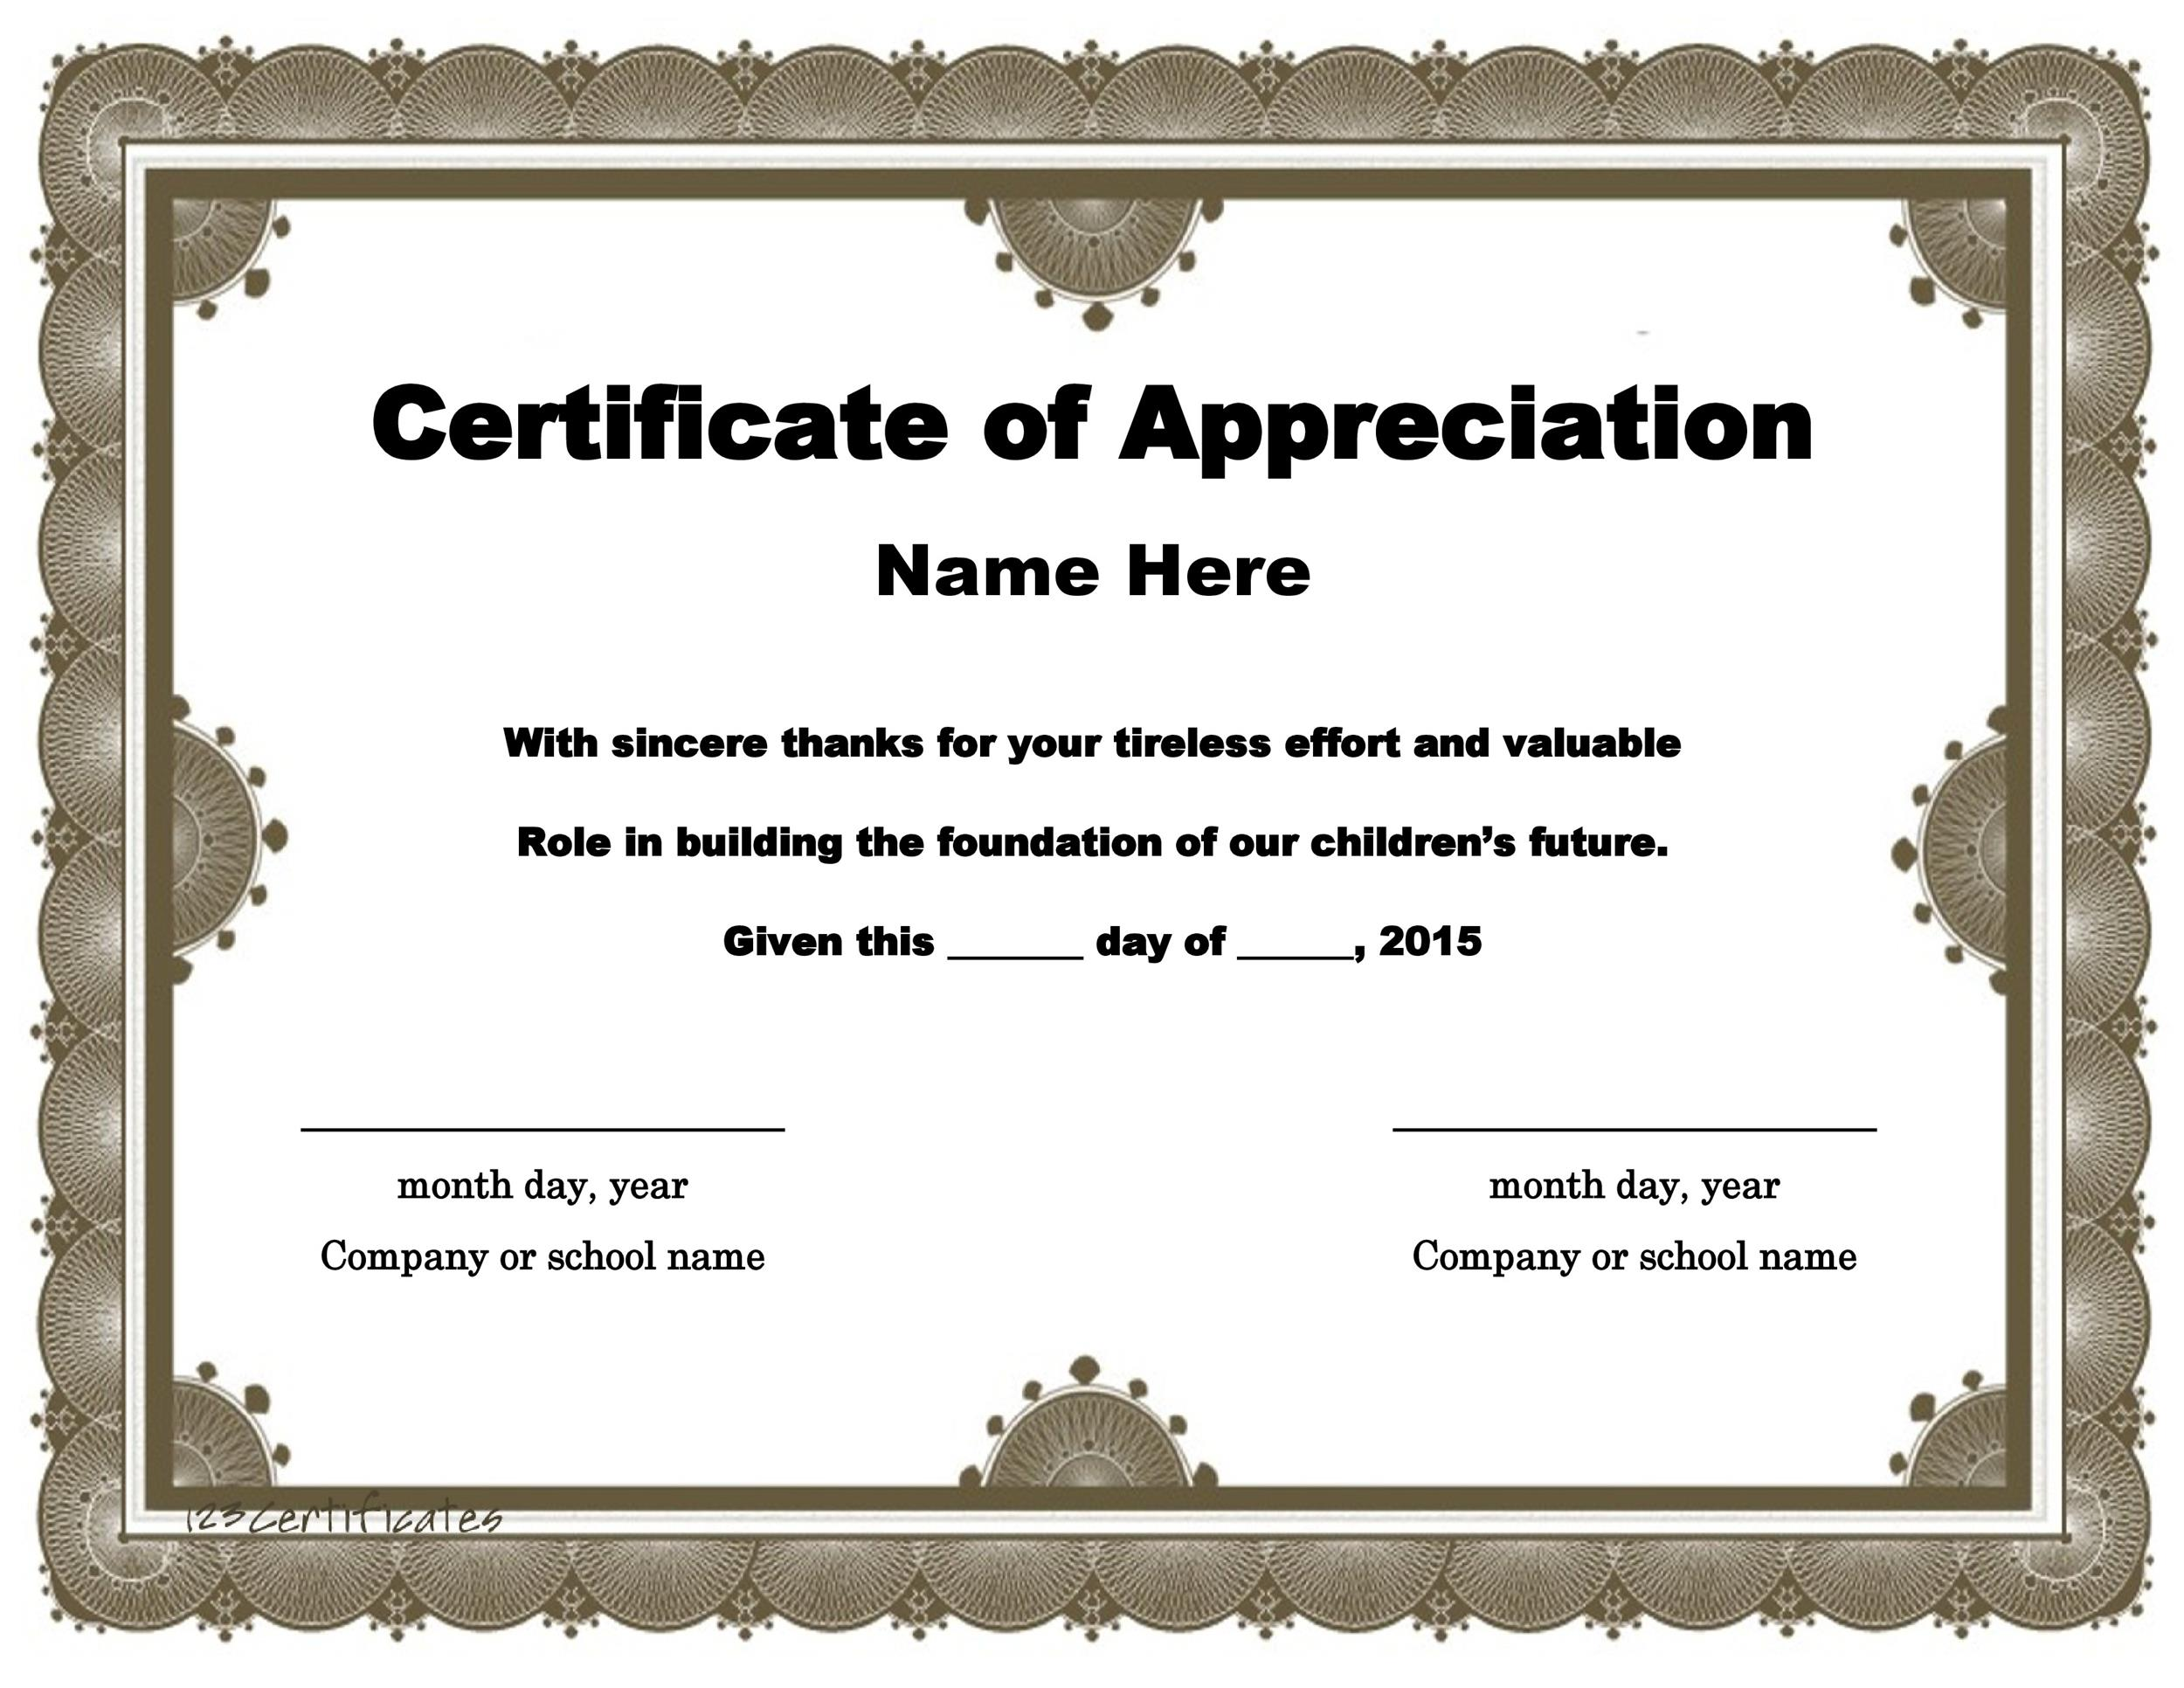 30 free certificate of appreciation templates and letters printable certificate of appreciation 03 yelopaper Image collections